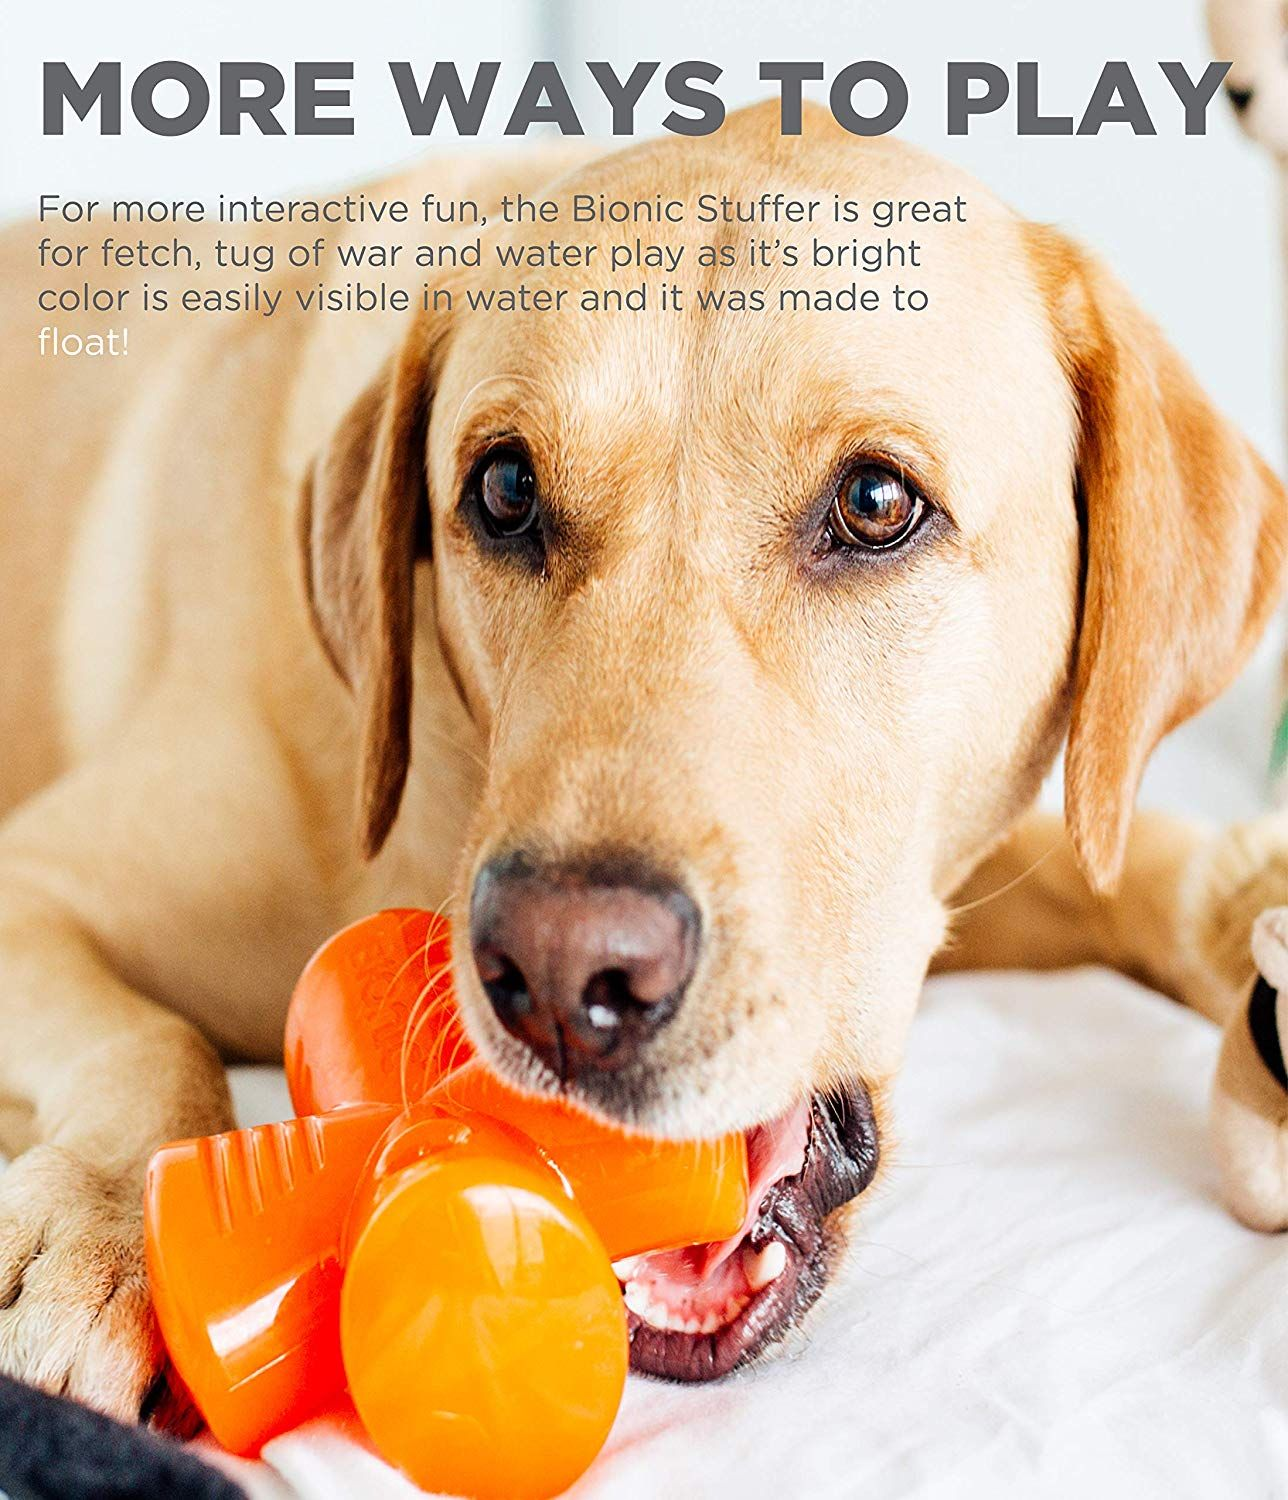 Bionic Stuffer Durable Tough Fetch And Chew Toy For Dogs Click